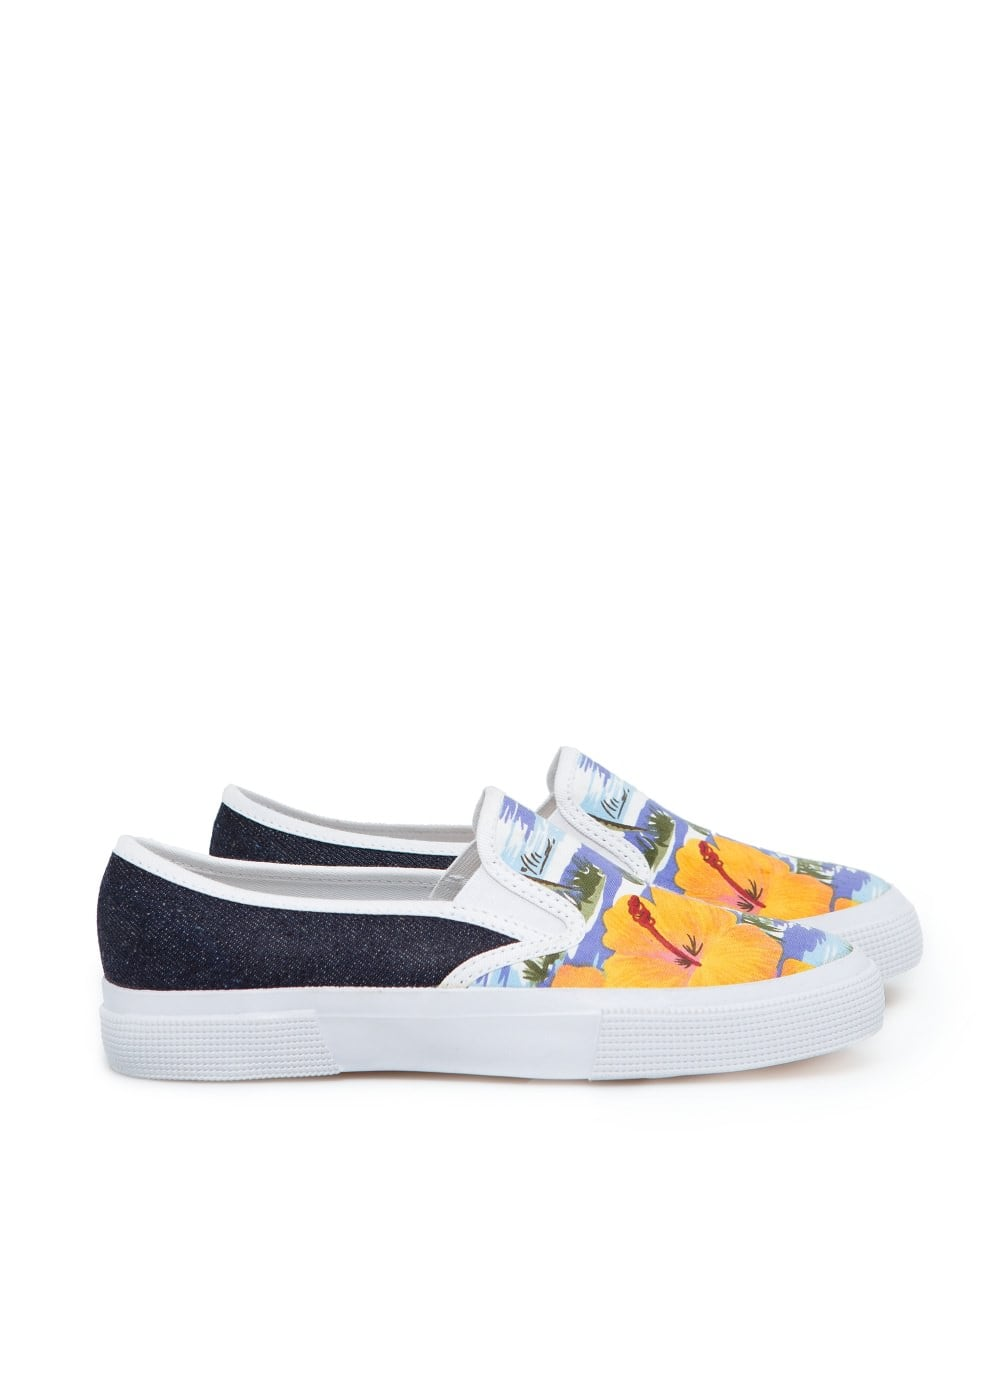 Tropical slip-on sneakers